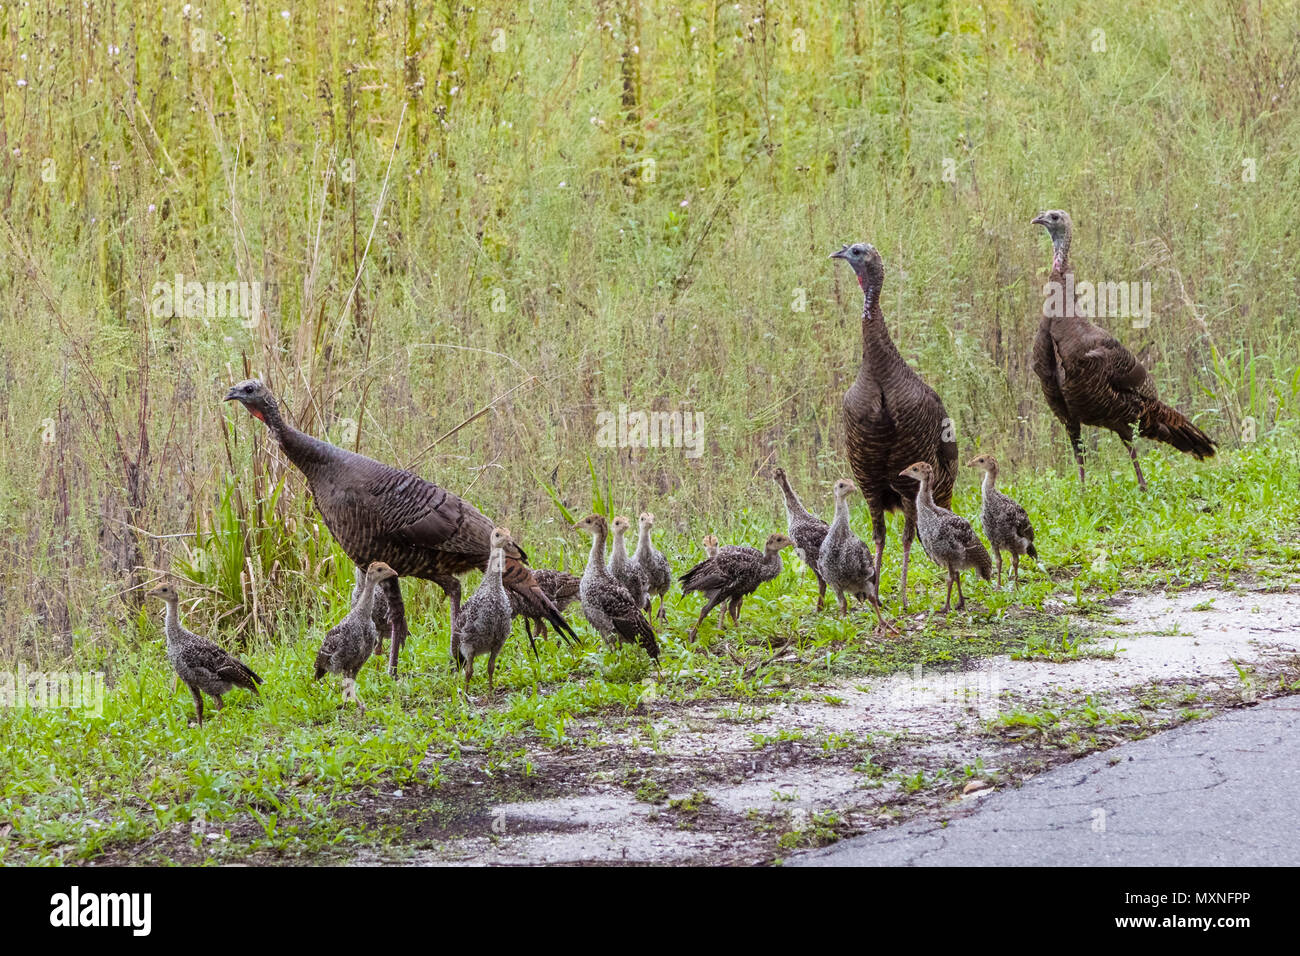 Rafter or a flock of adult and young wi rafter or a flockld Turkeys in Myakka River State Park, Sarasota, Florida - Stock Image